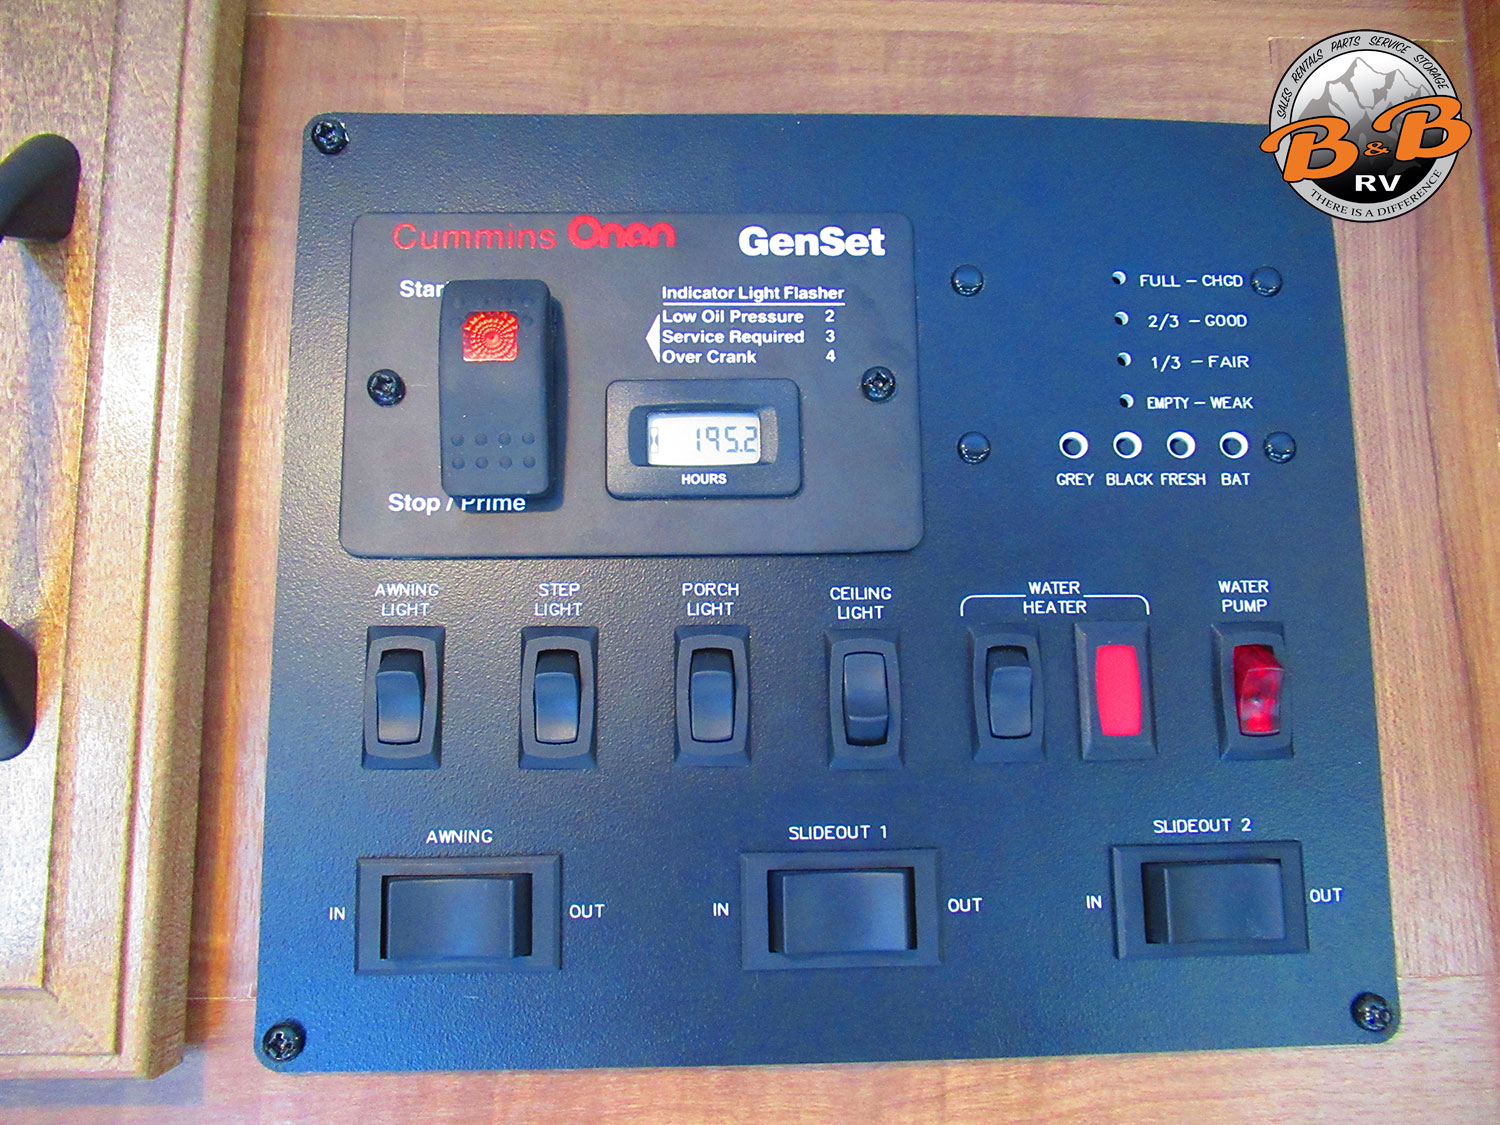 2020 Gulf Stream Conquest 6320 Control Center